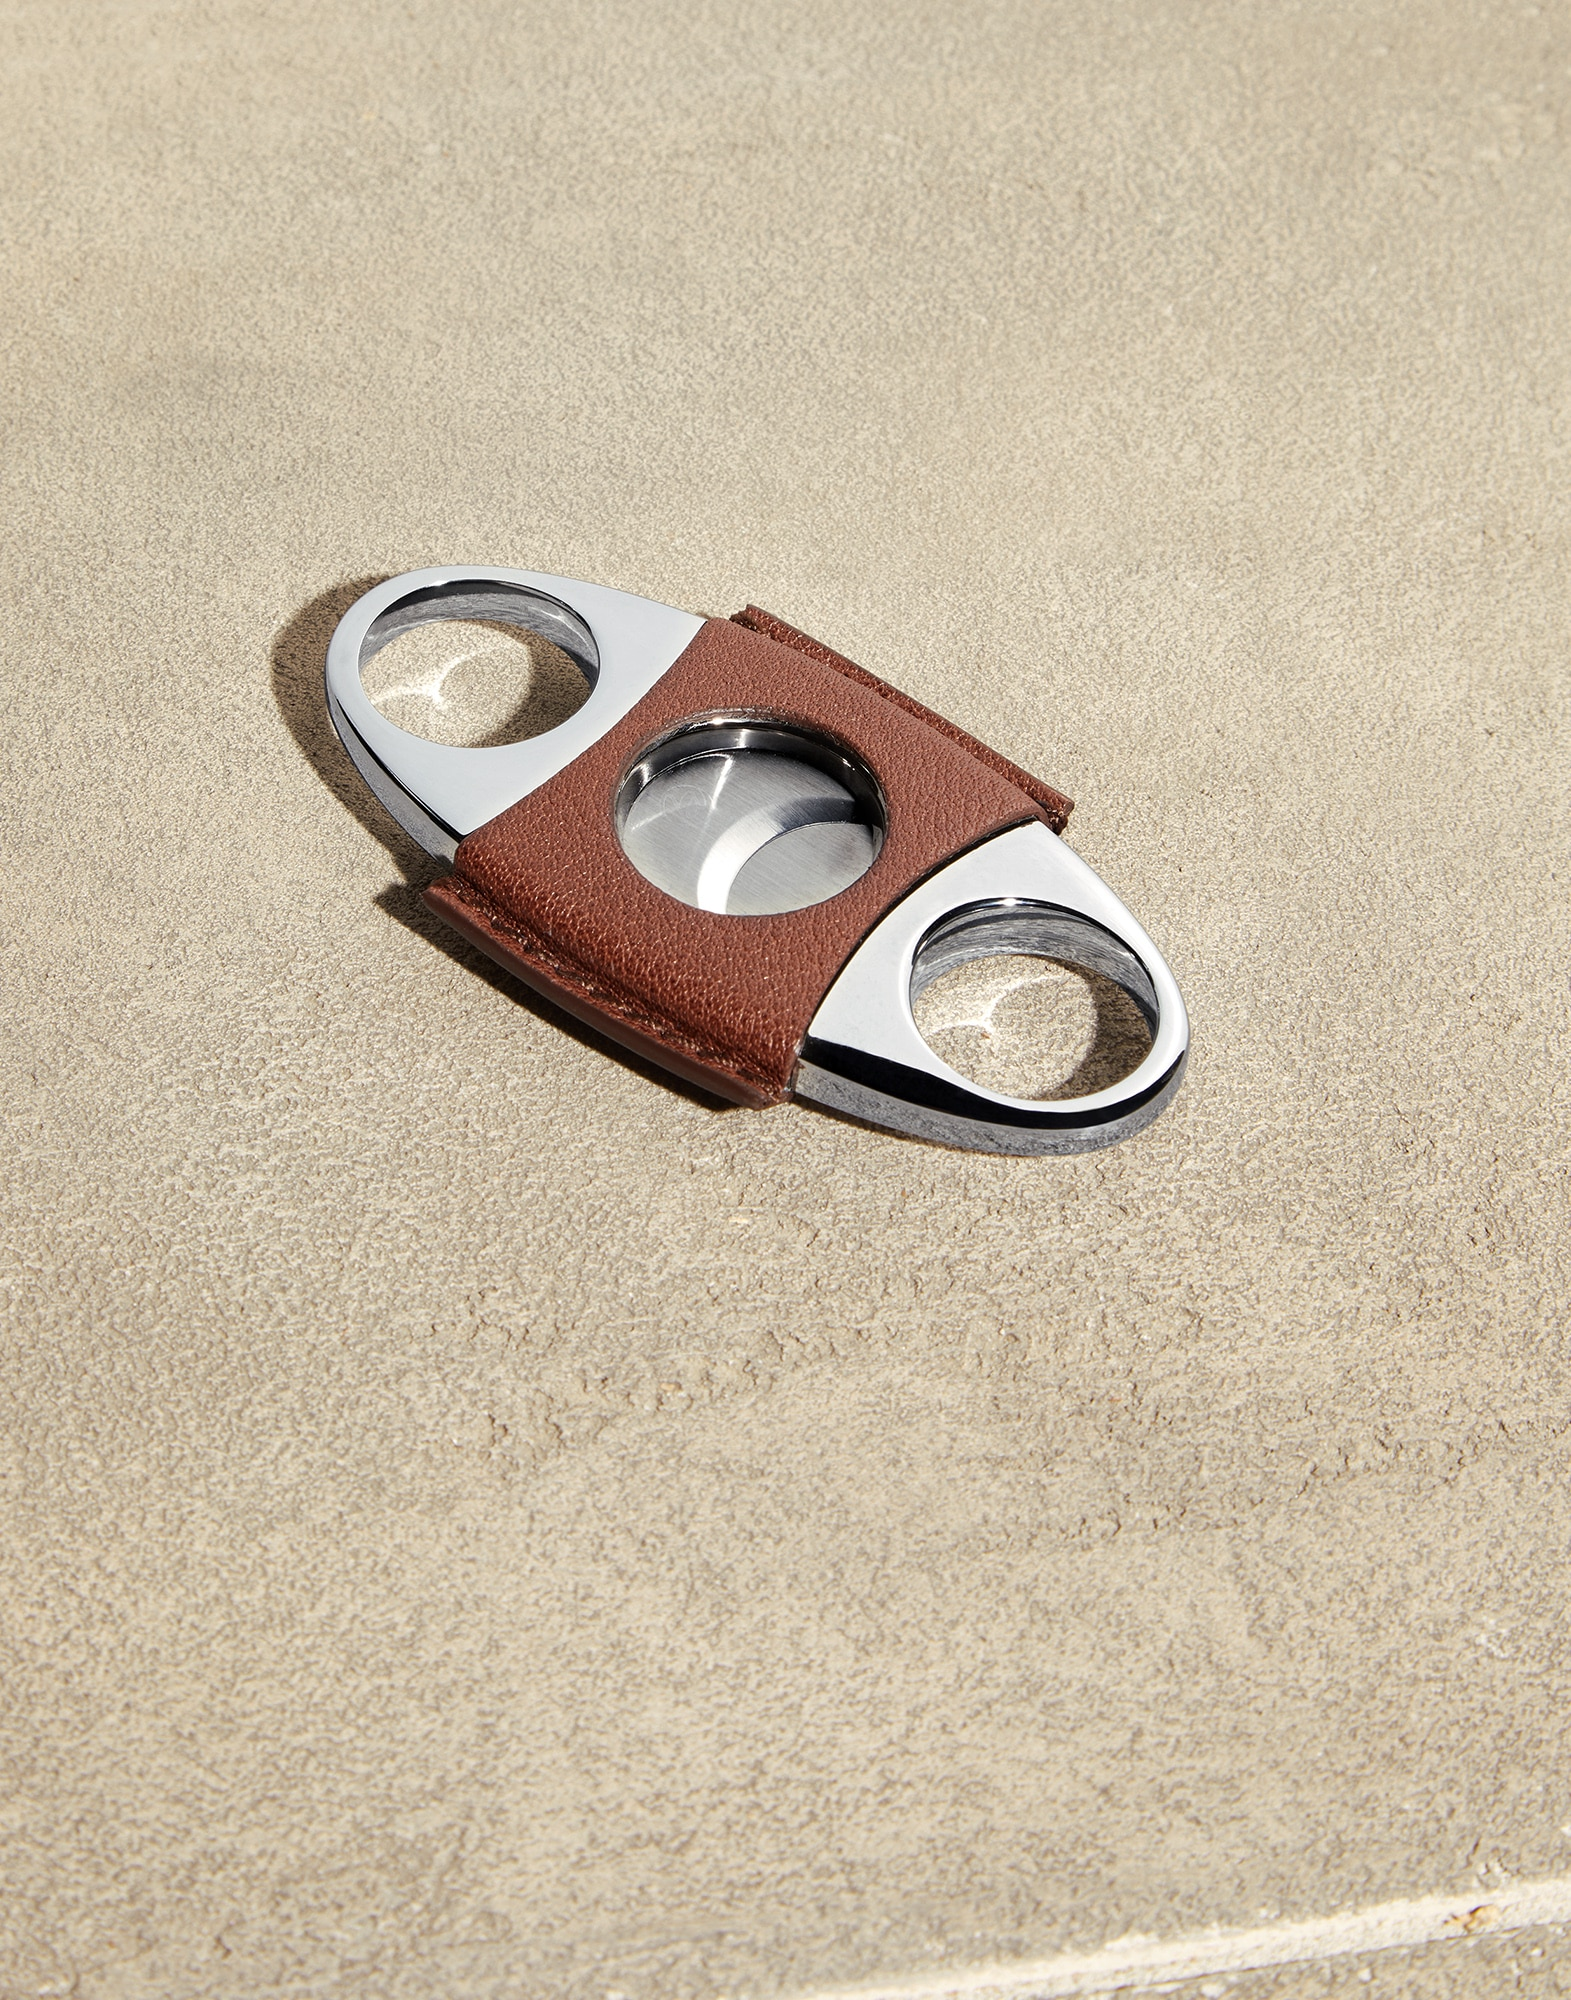 Cigar Cutter - Front view